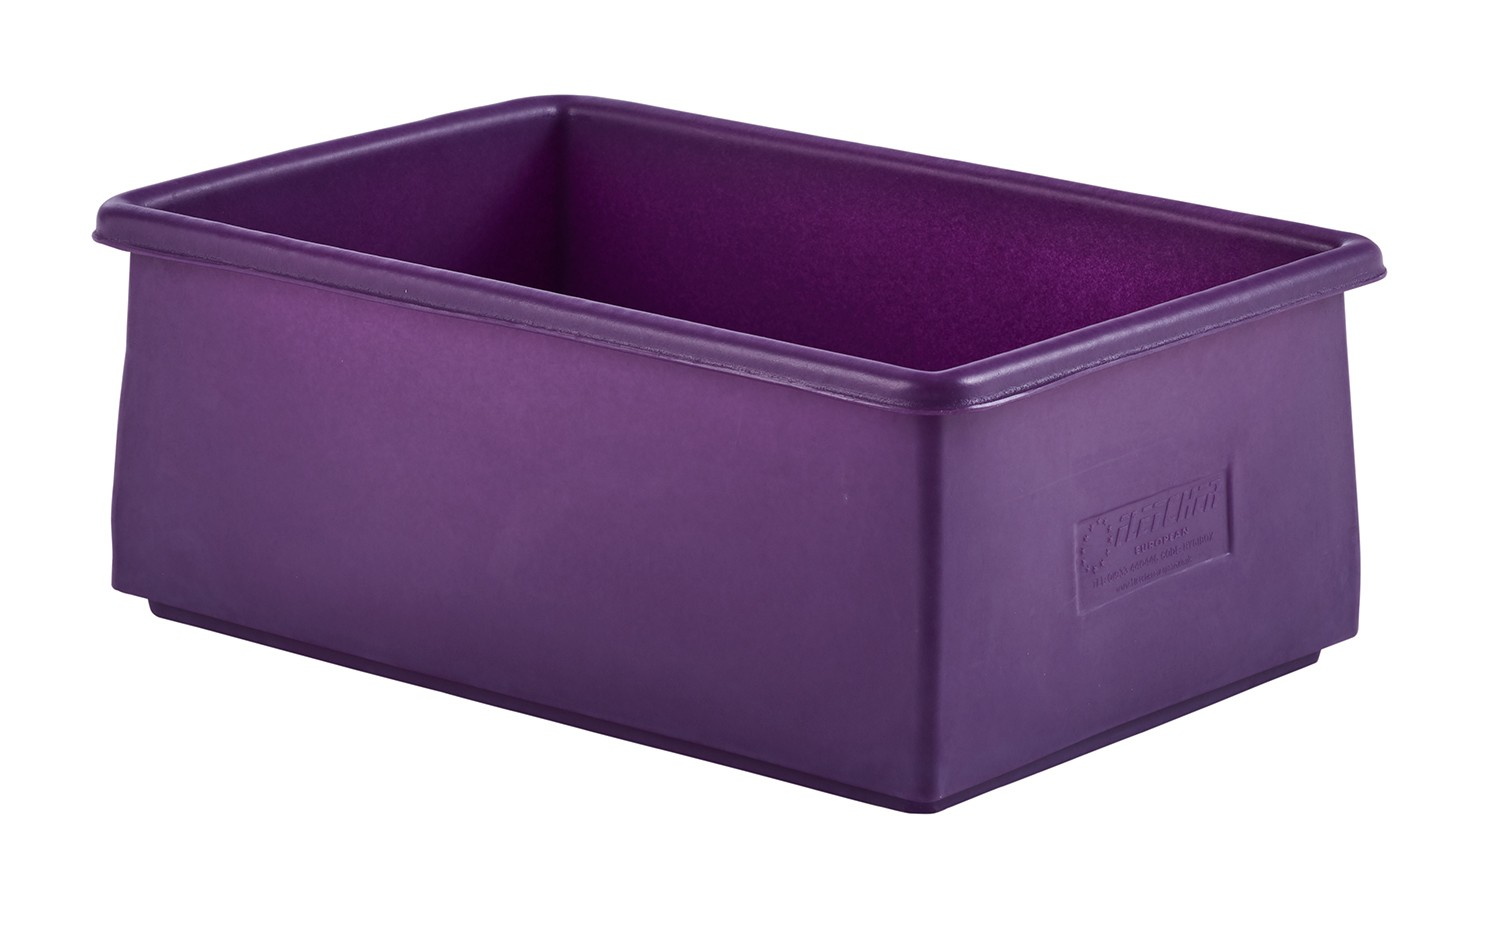 Plastikkisten Stapelbar Hygibox Stacking Container - Food Handling Containers